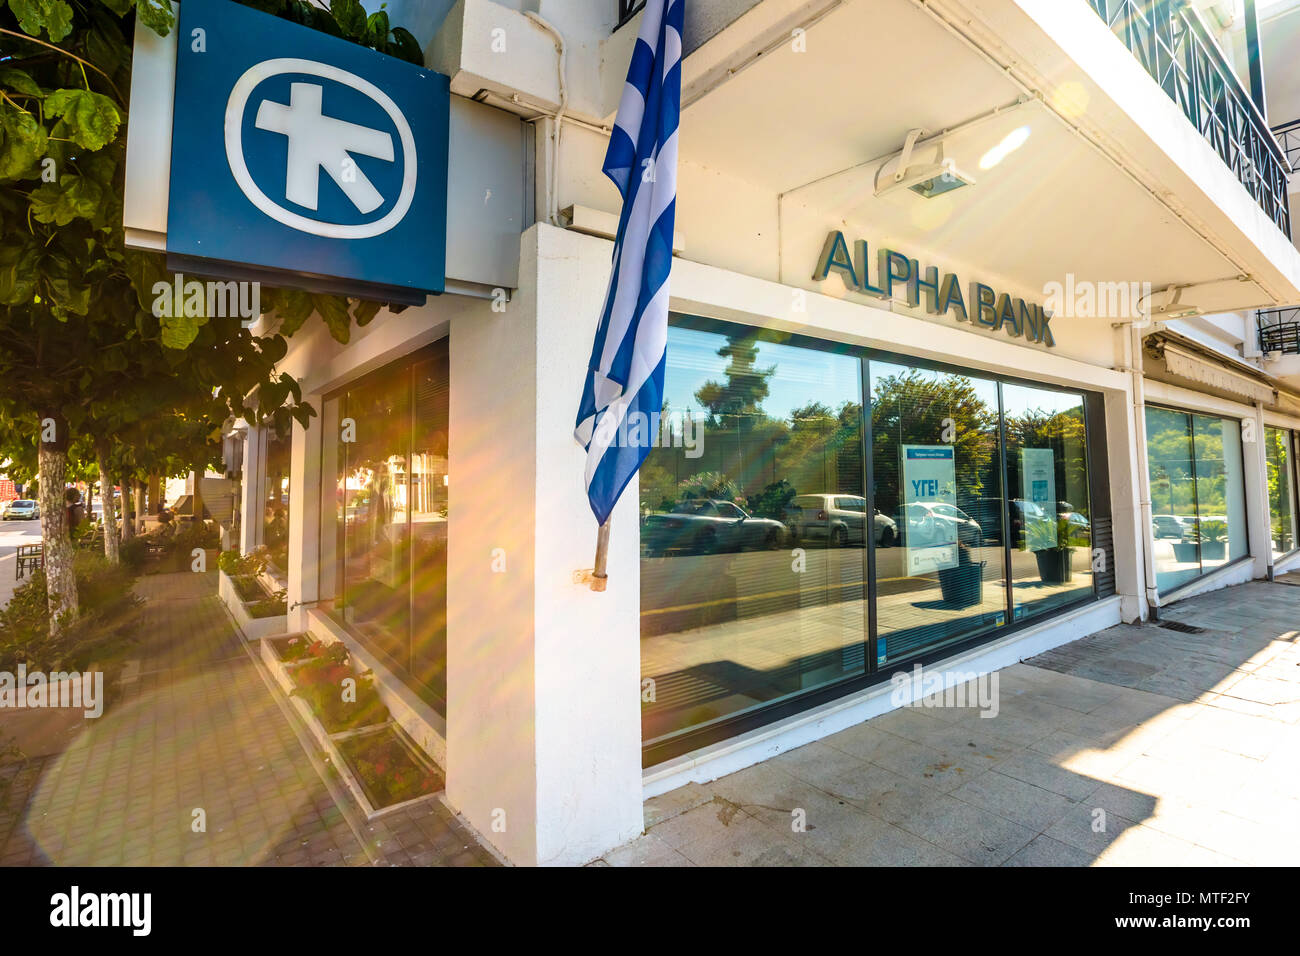 Olimpia town, Peloponnese, Greece - August 19, 2015:  Greek bank window with ATM and flag of Greece of the local Alpha Bank - Stock Image